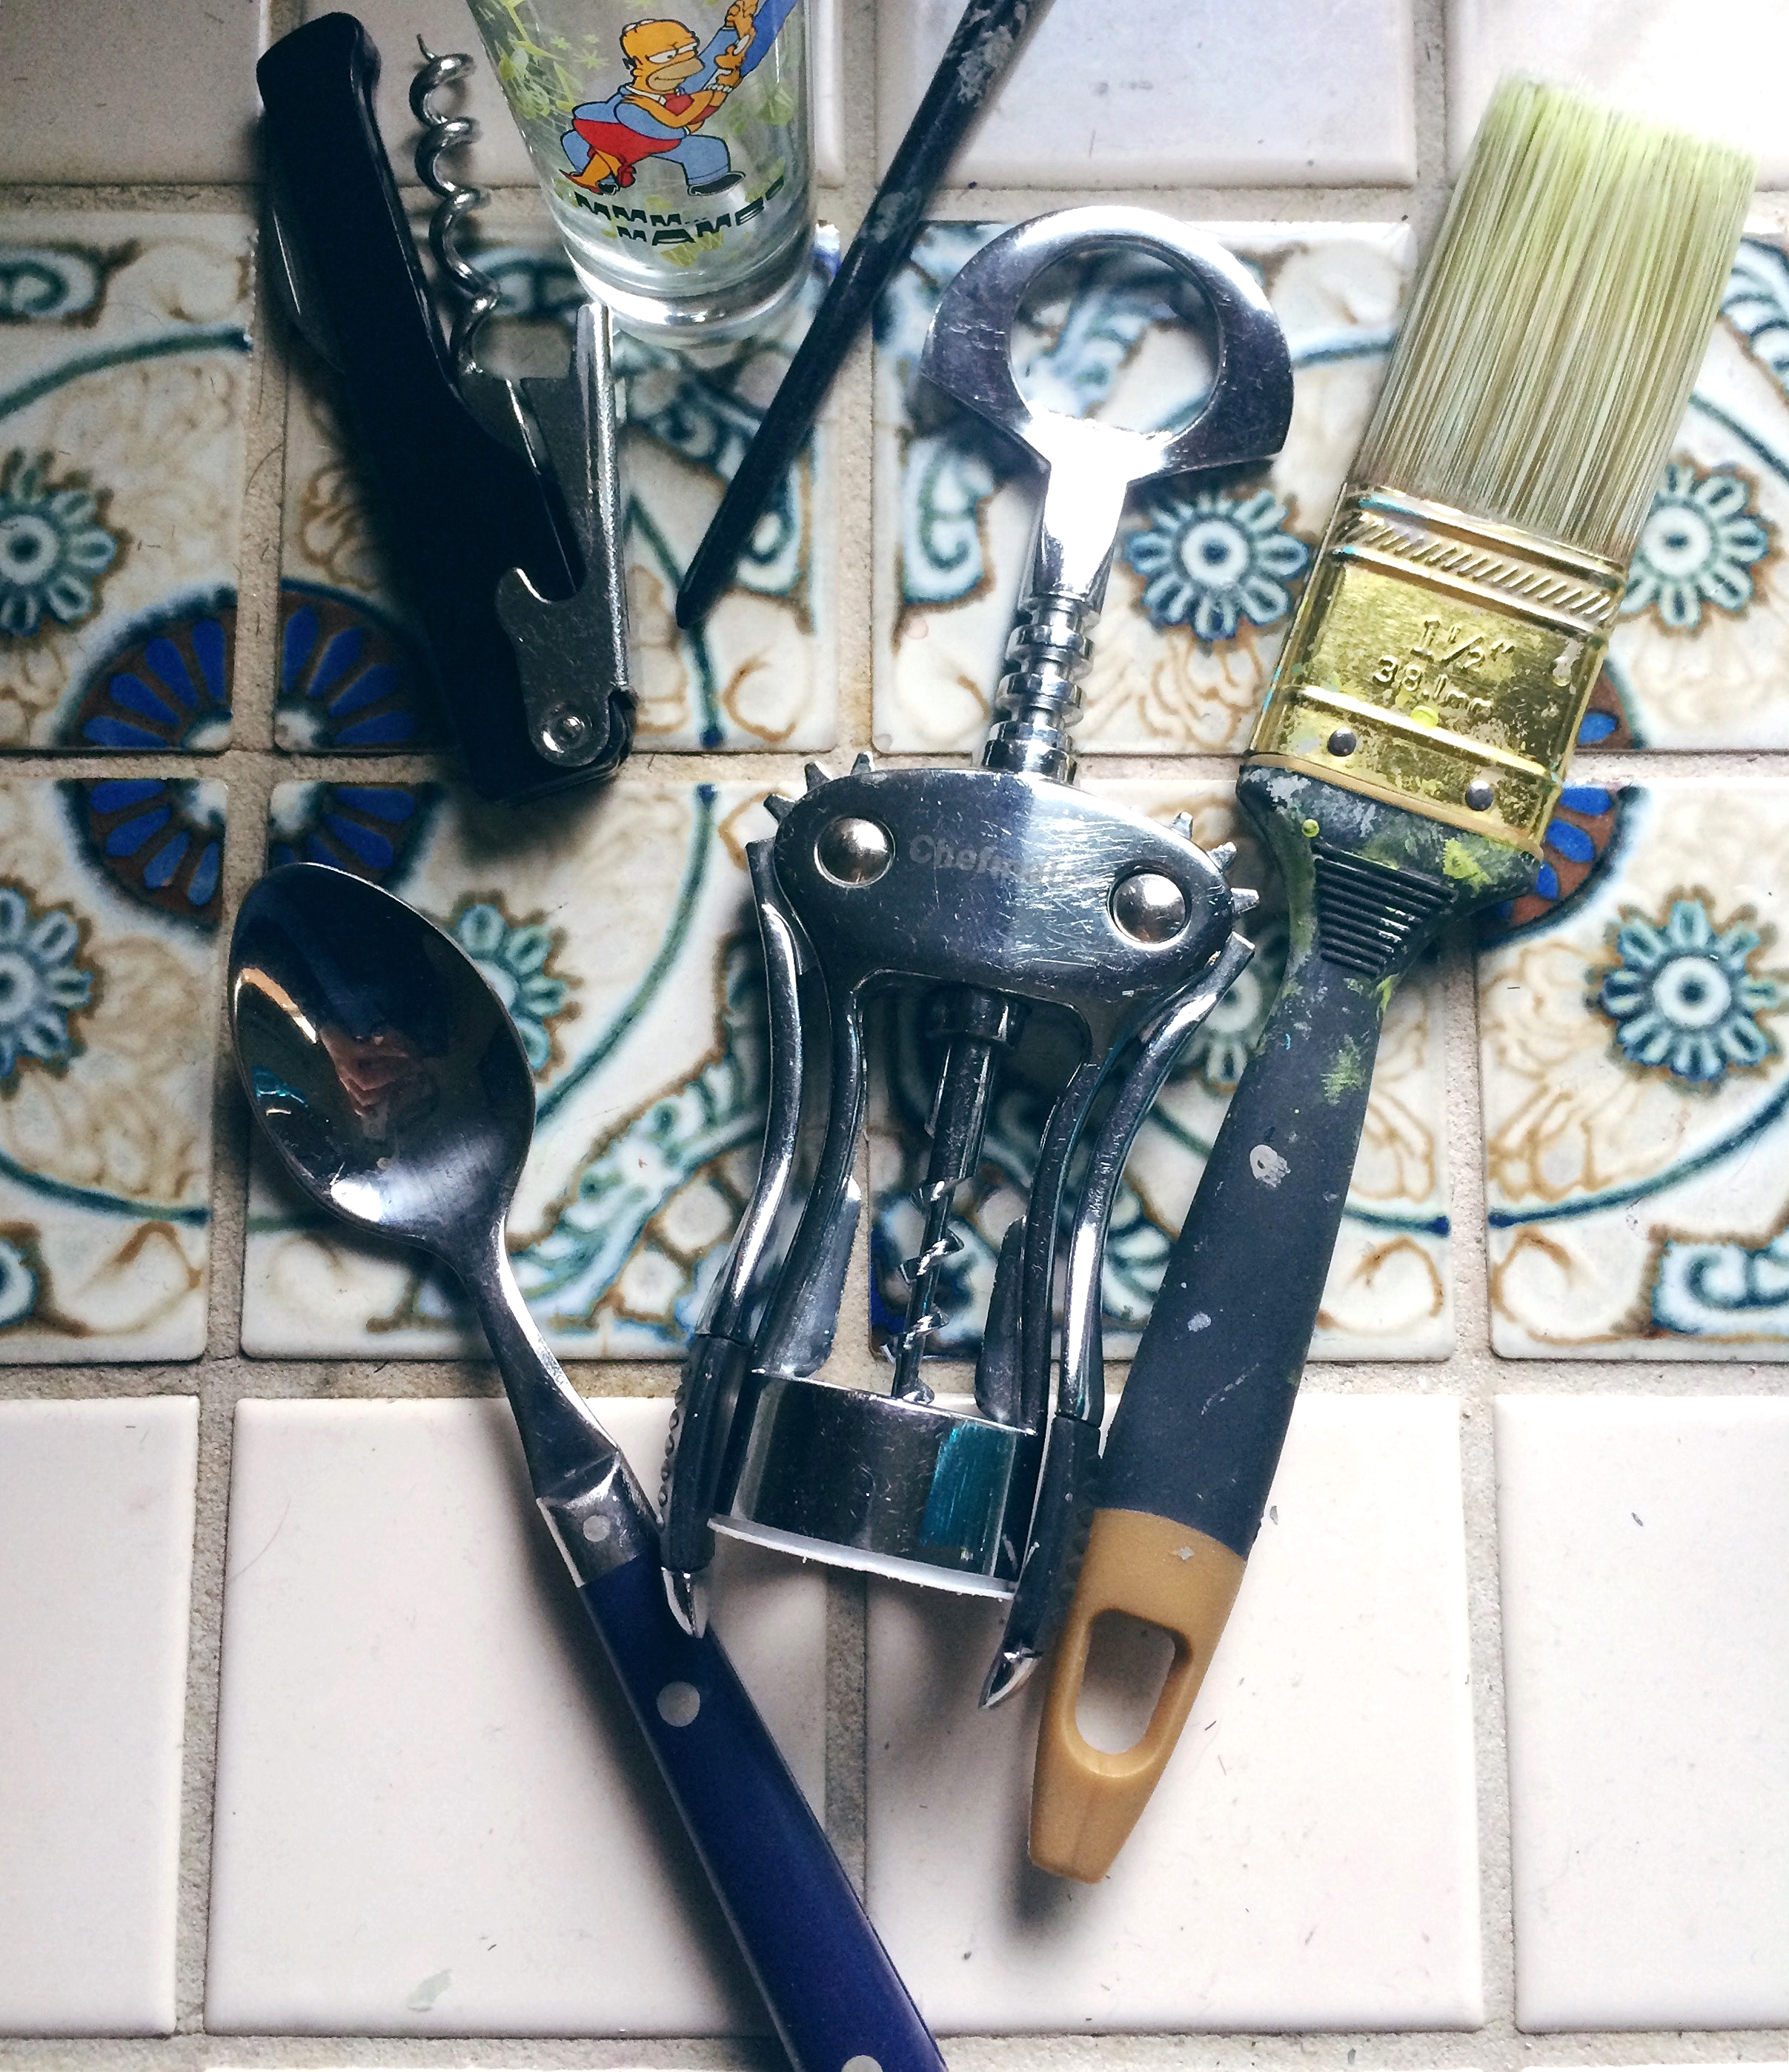 Wine bottle openers, paint brushes, spoons and a shot glass = evidence from working late at night.